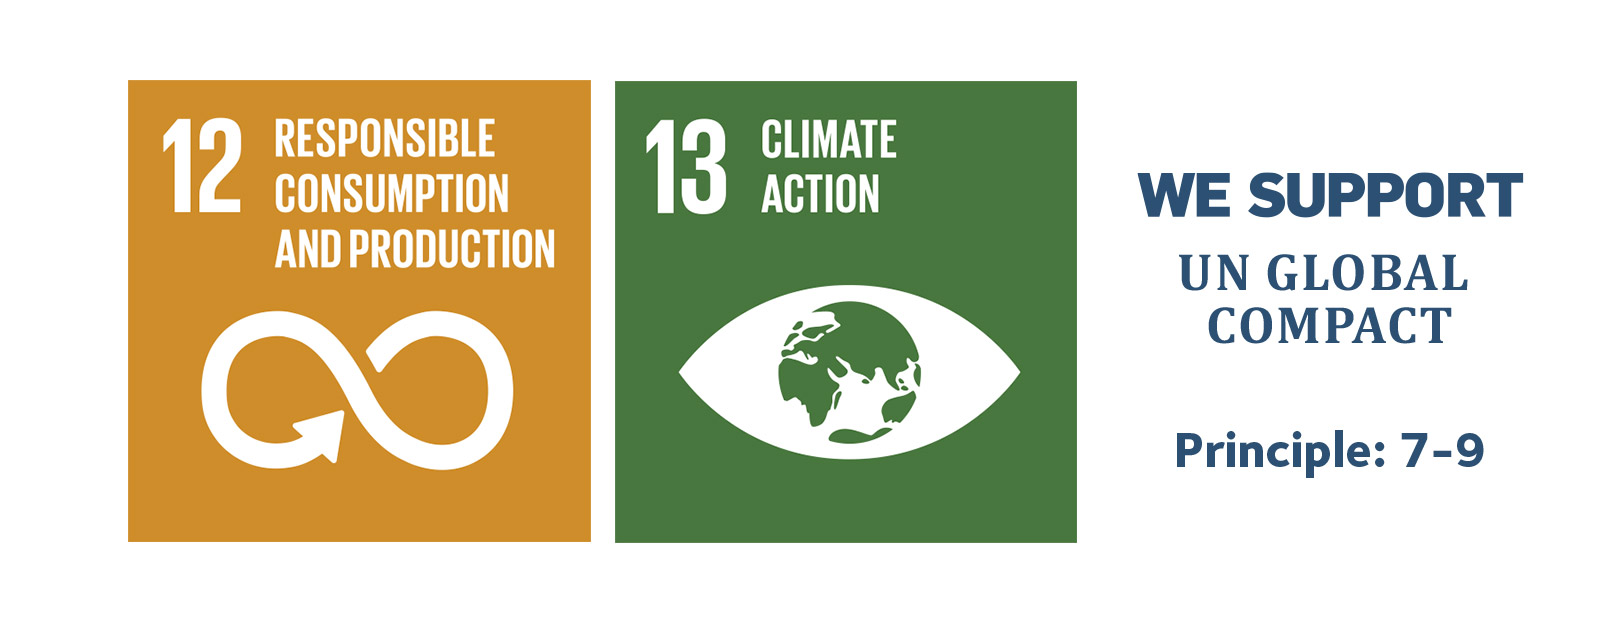 12. Responsible consumption and production. 13. Climate action.